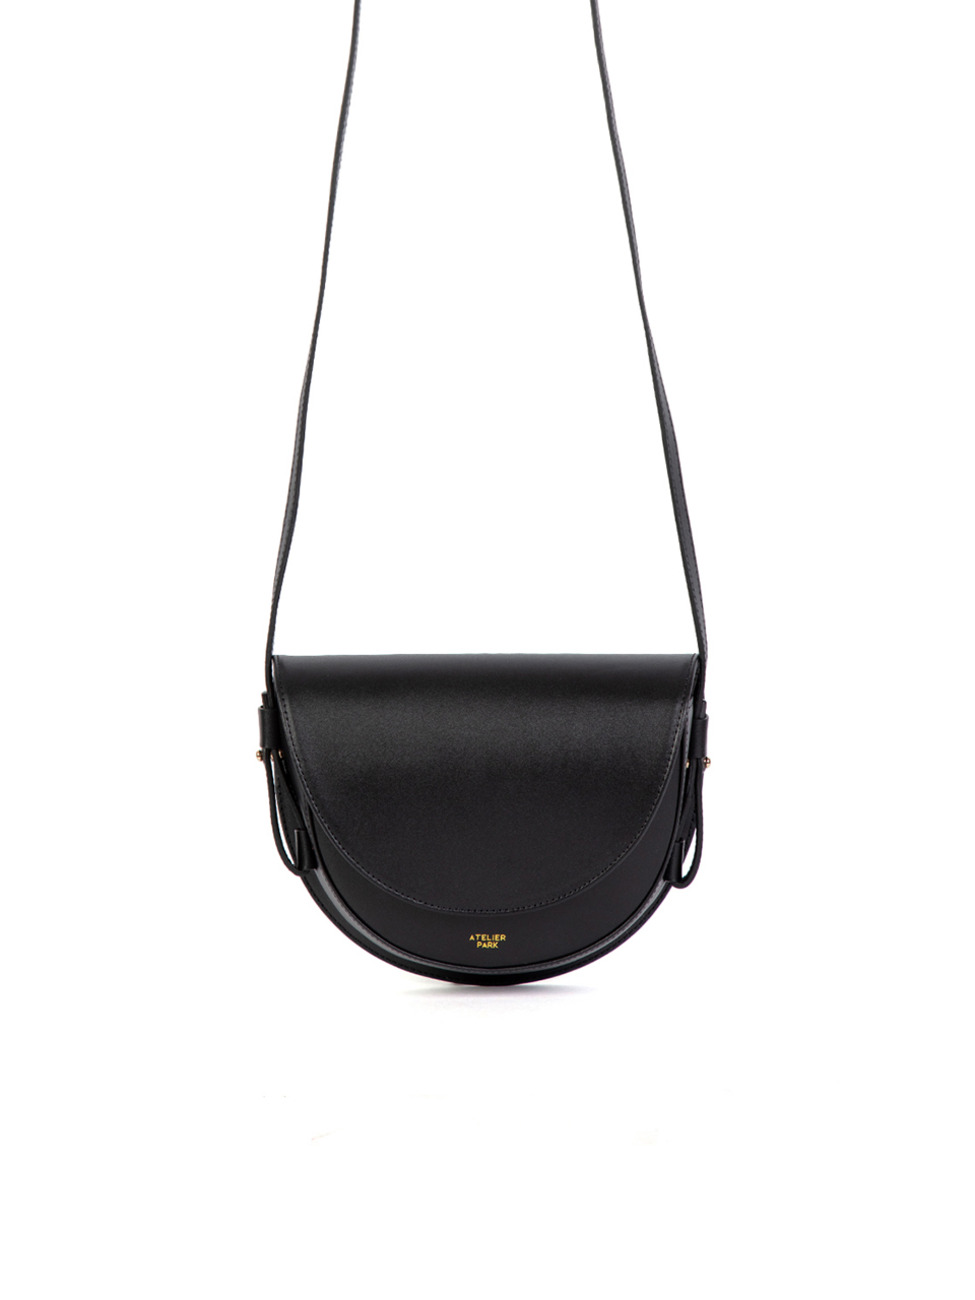 LAMI BAG _ MINI _ Black